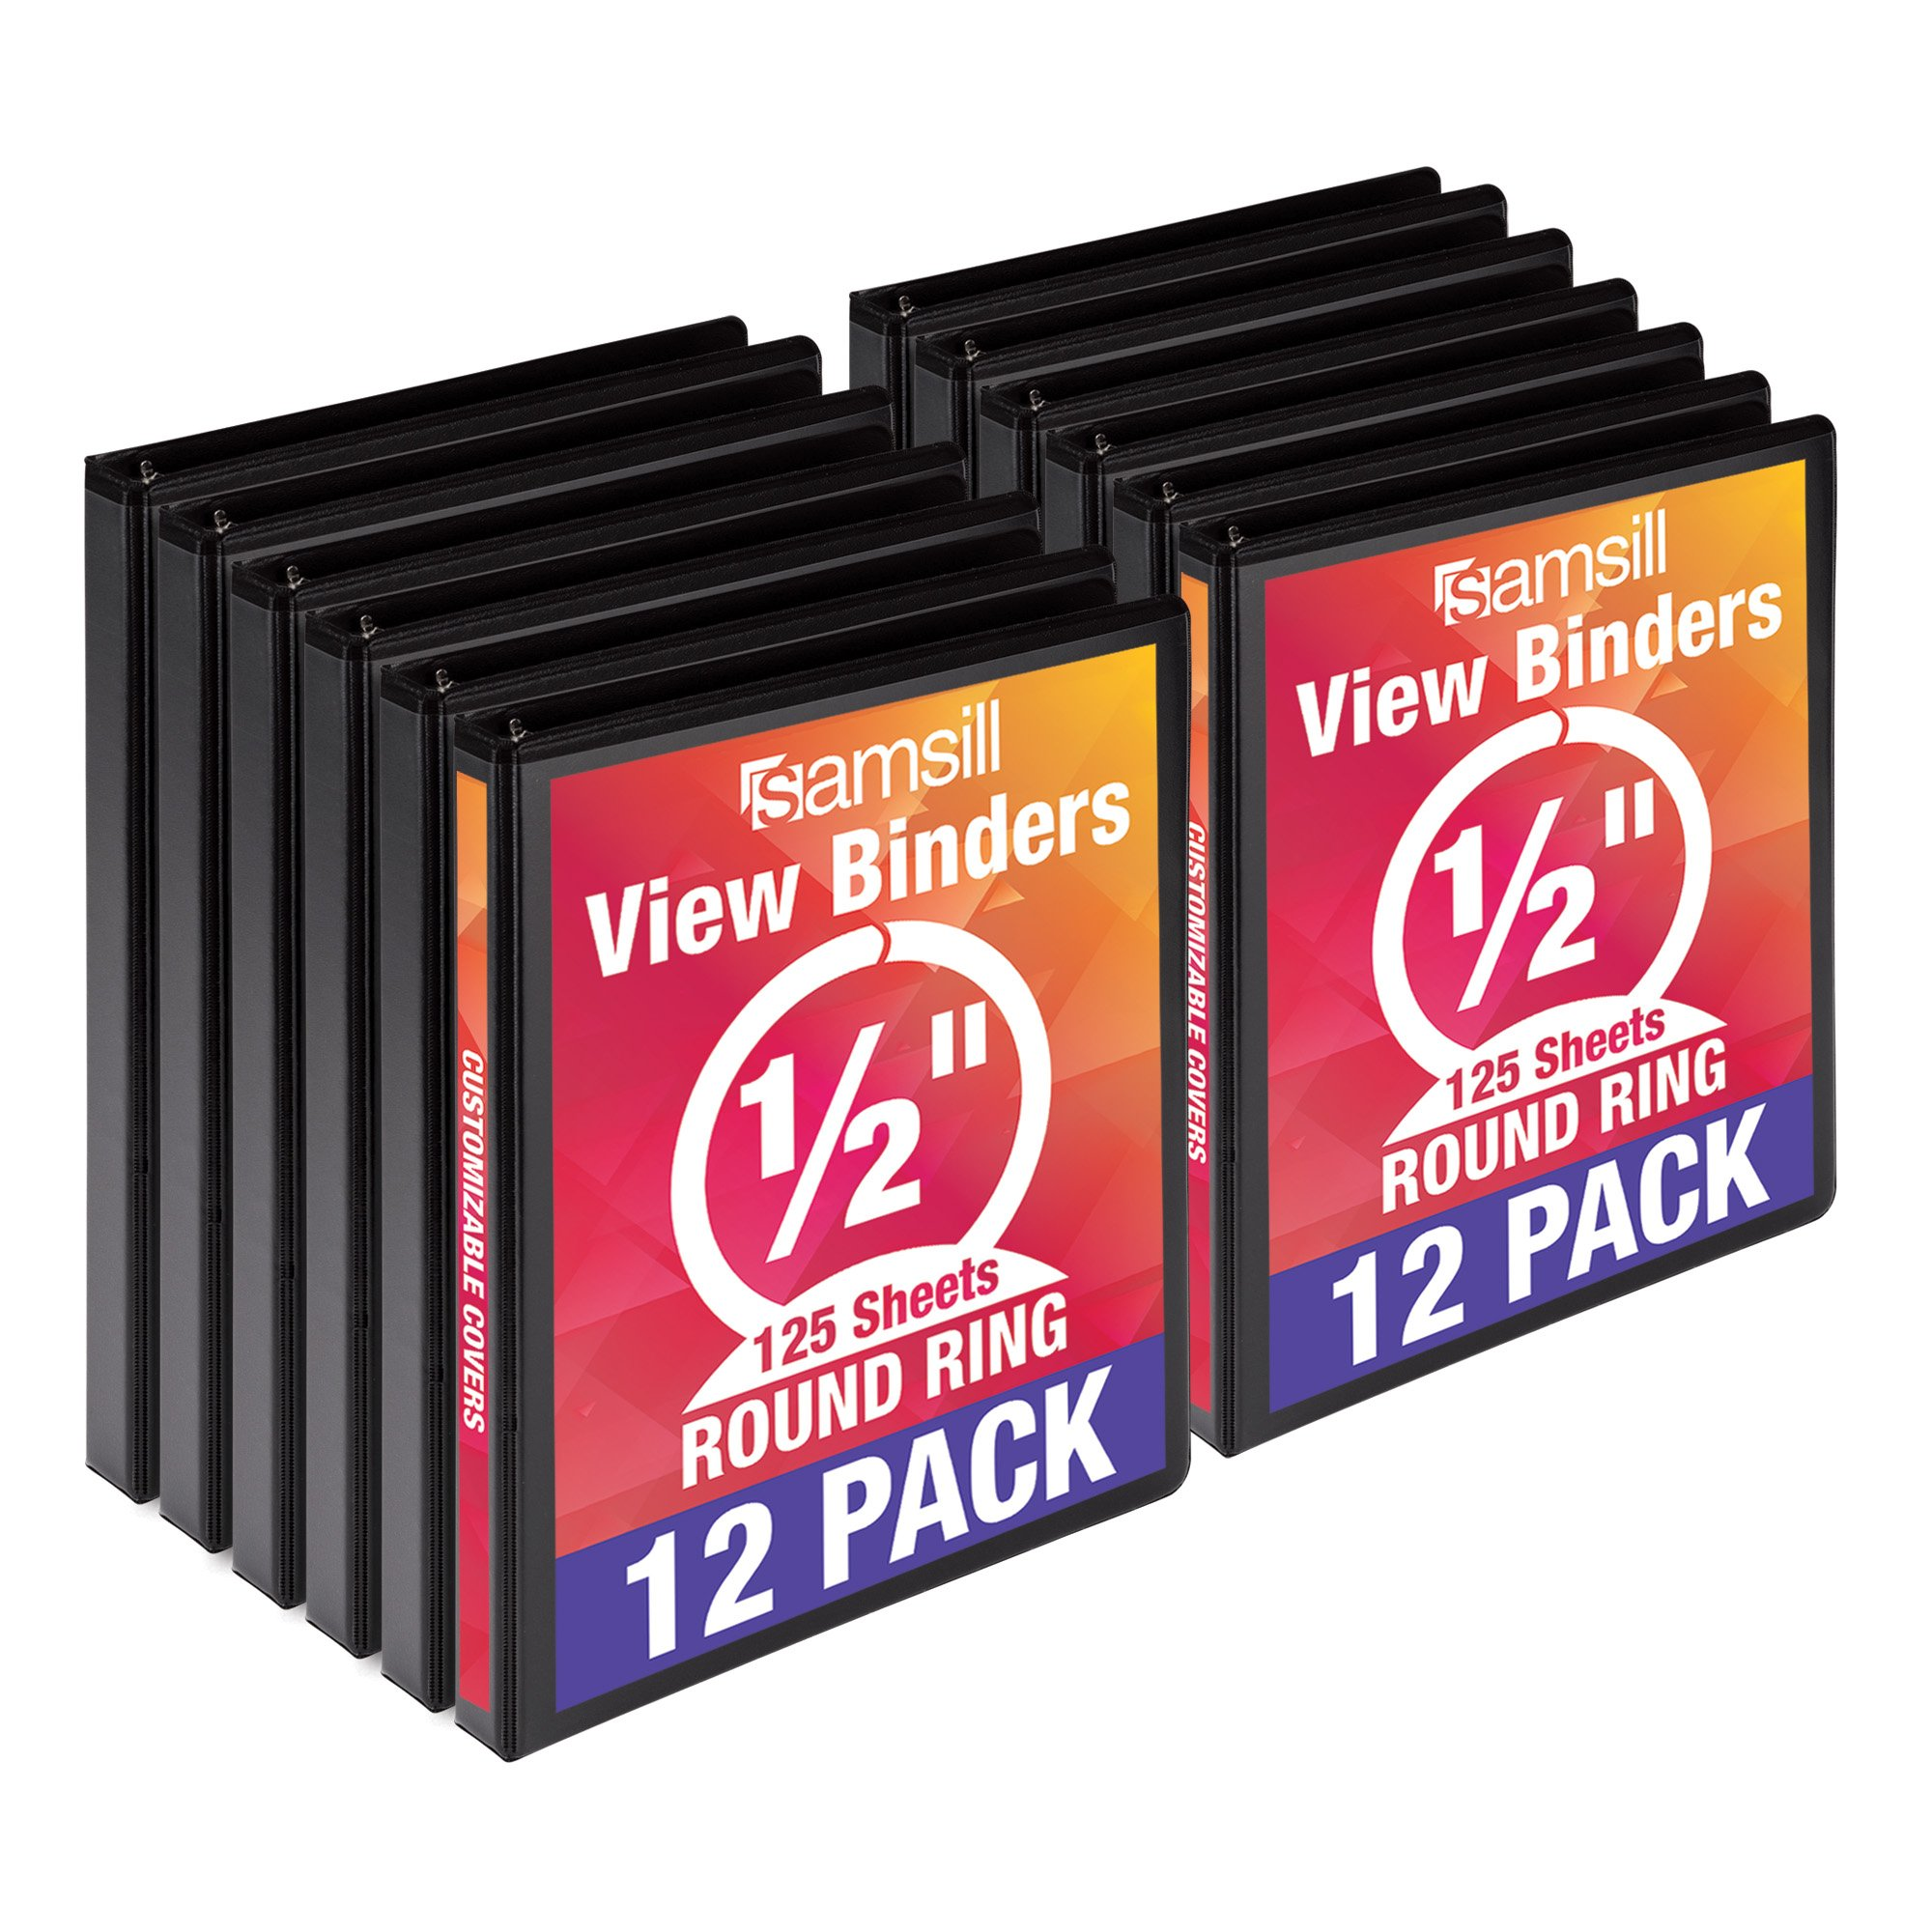 Samsill Economy 3 Ring View Binders.5 Inch Round Ring, Customizable Clear View Cover, Black, Bulk Binders - 12 Pack